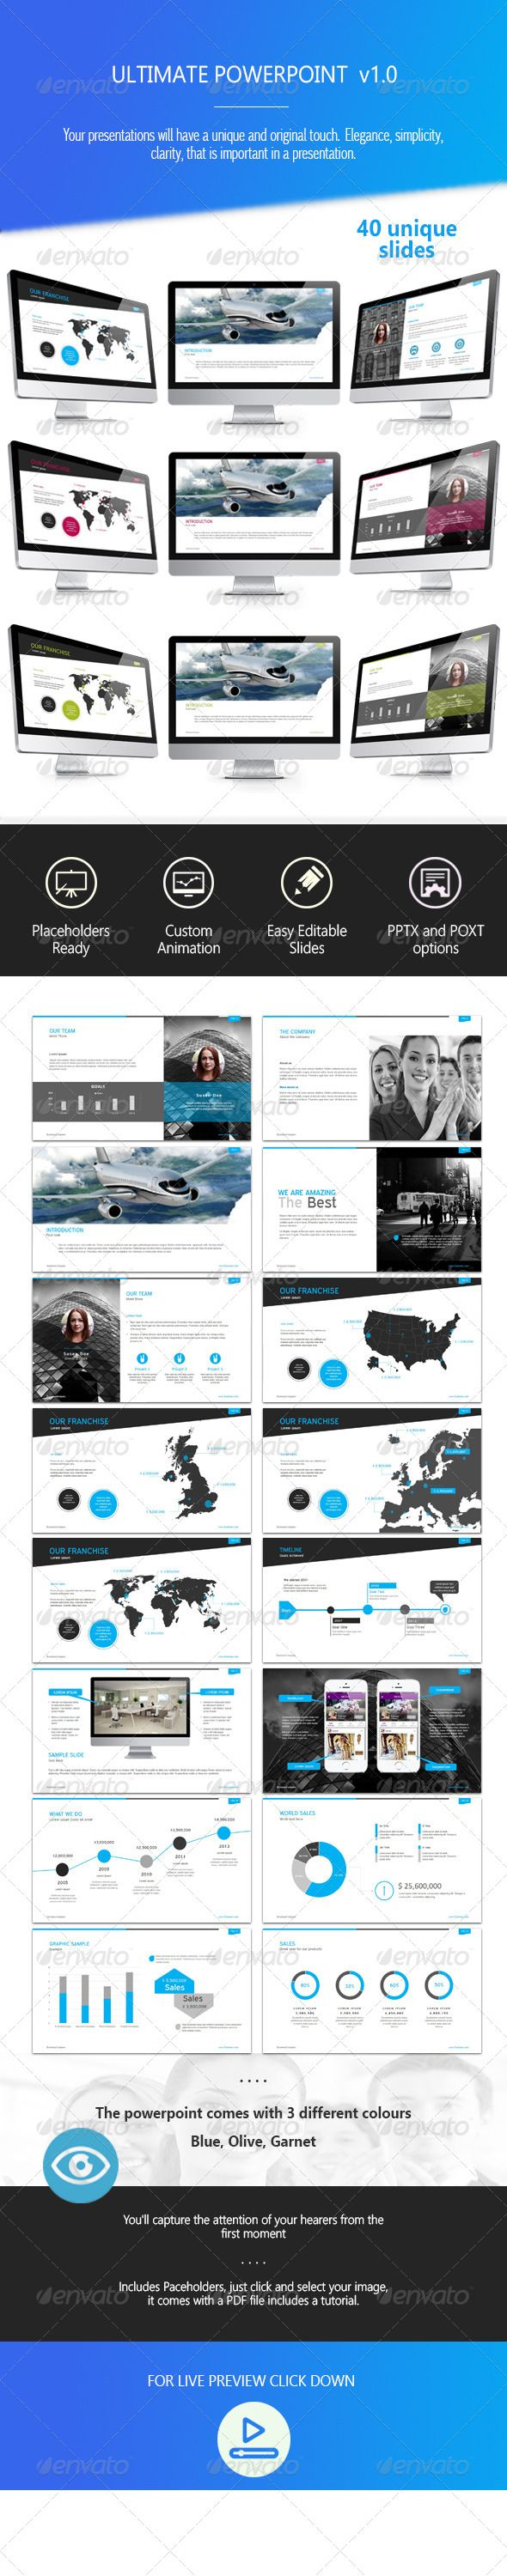 1x1.trans Ultimate Powerpoint Version (Powerpoint Templates)